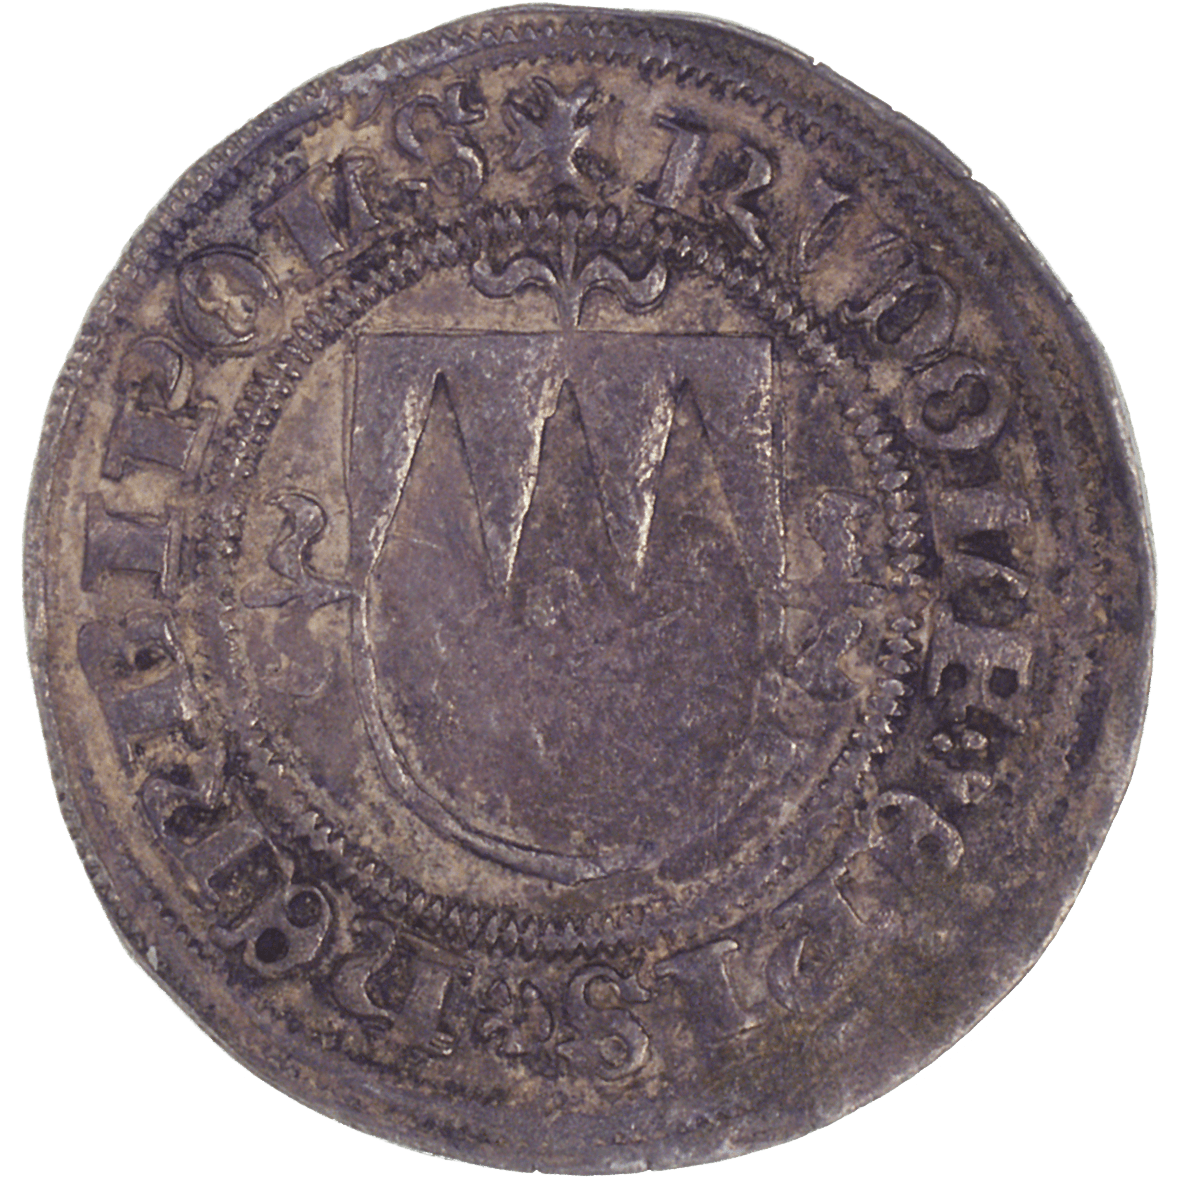 Holy Roman Empire, Bishopric of Würzburg, Rudolf II of Scherenberg, Shilling  (obverse)